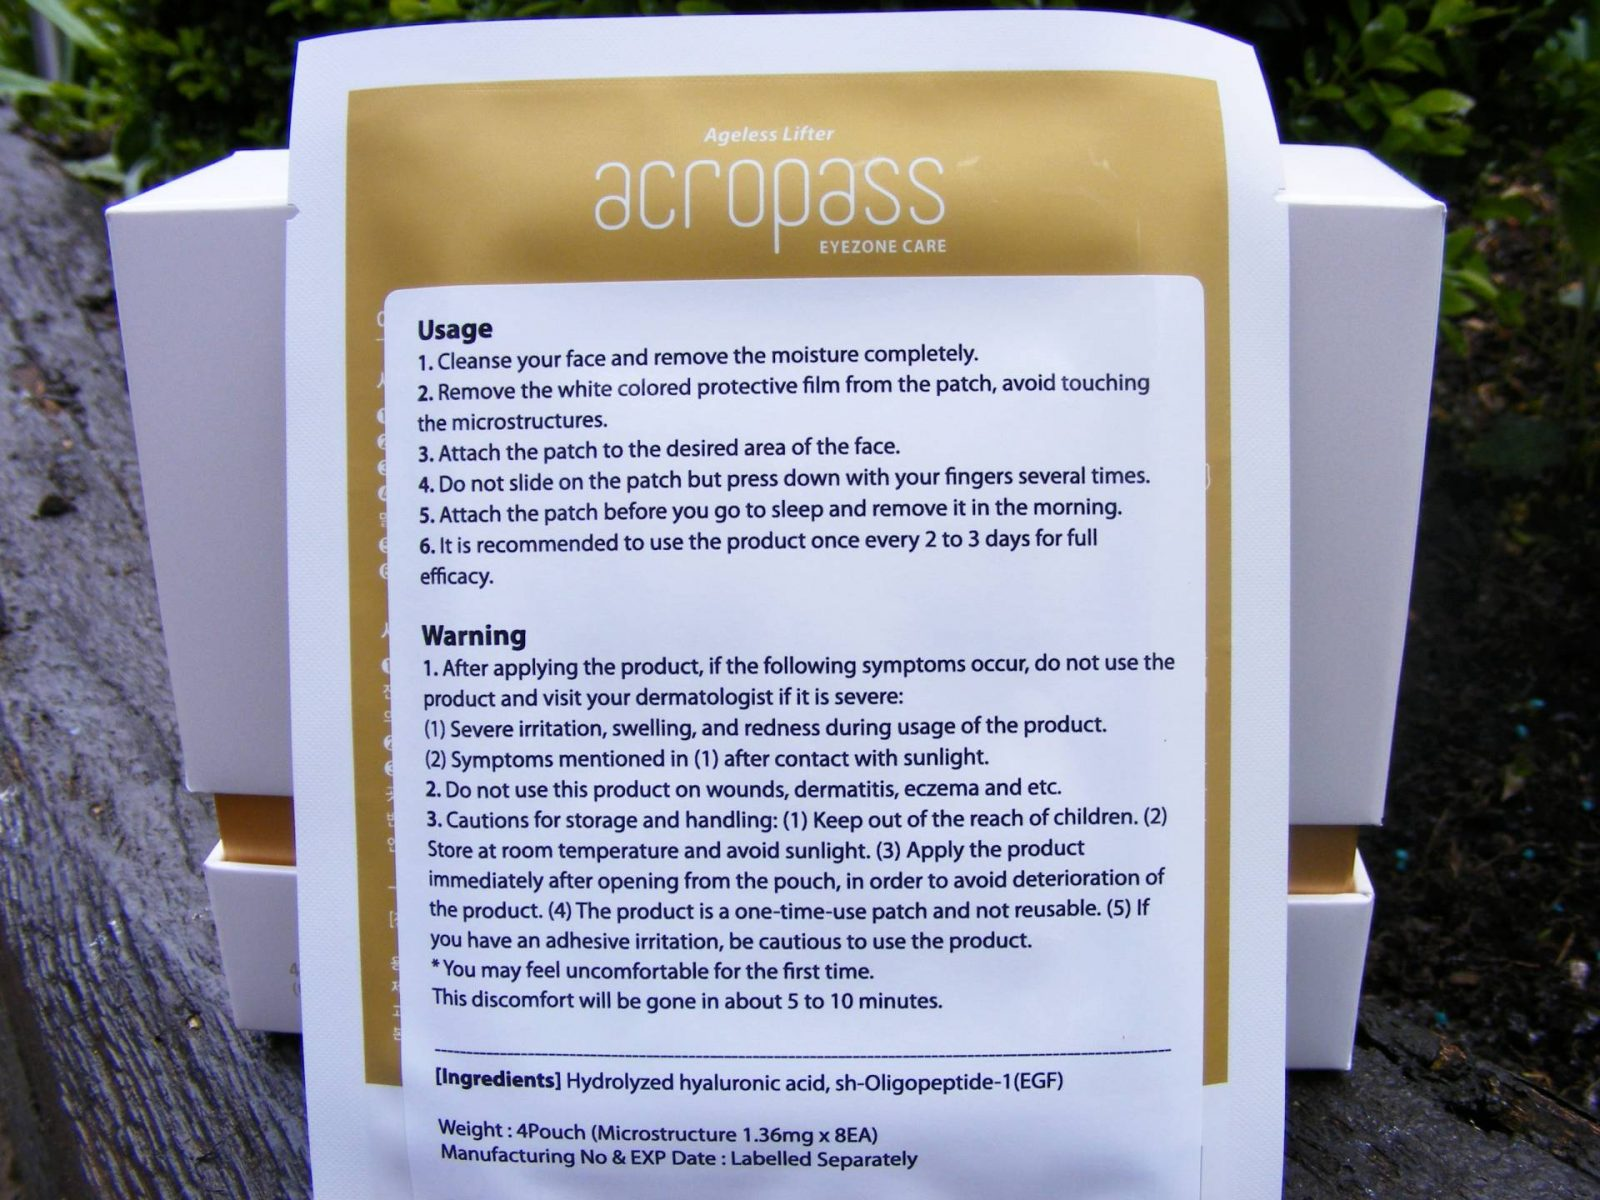 Acropass Ageless Lifter Eyezone Care instructions